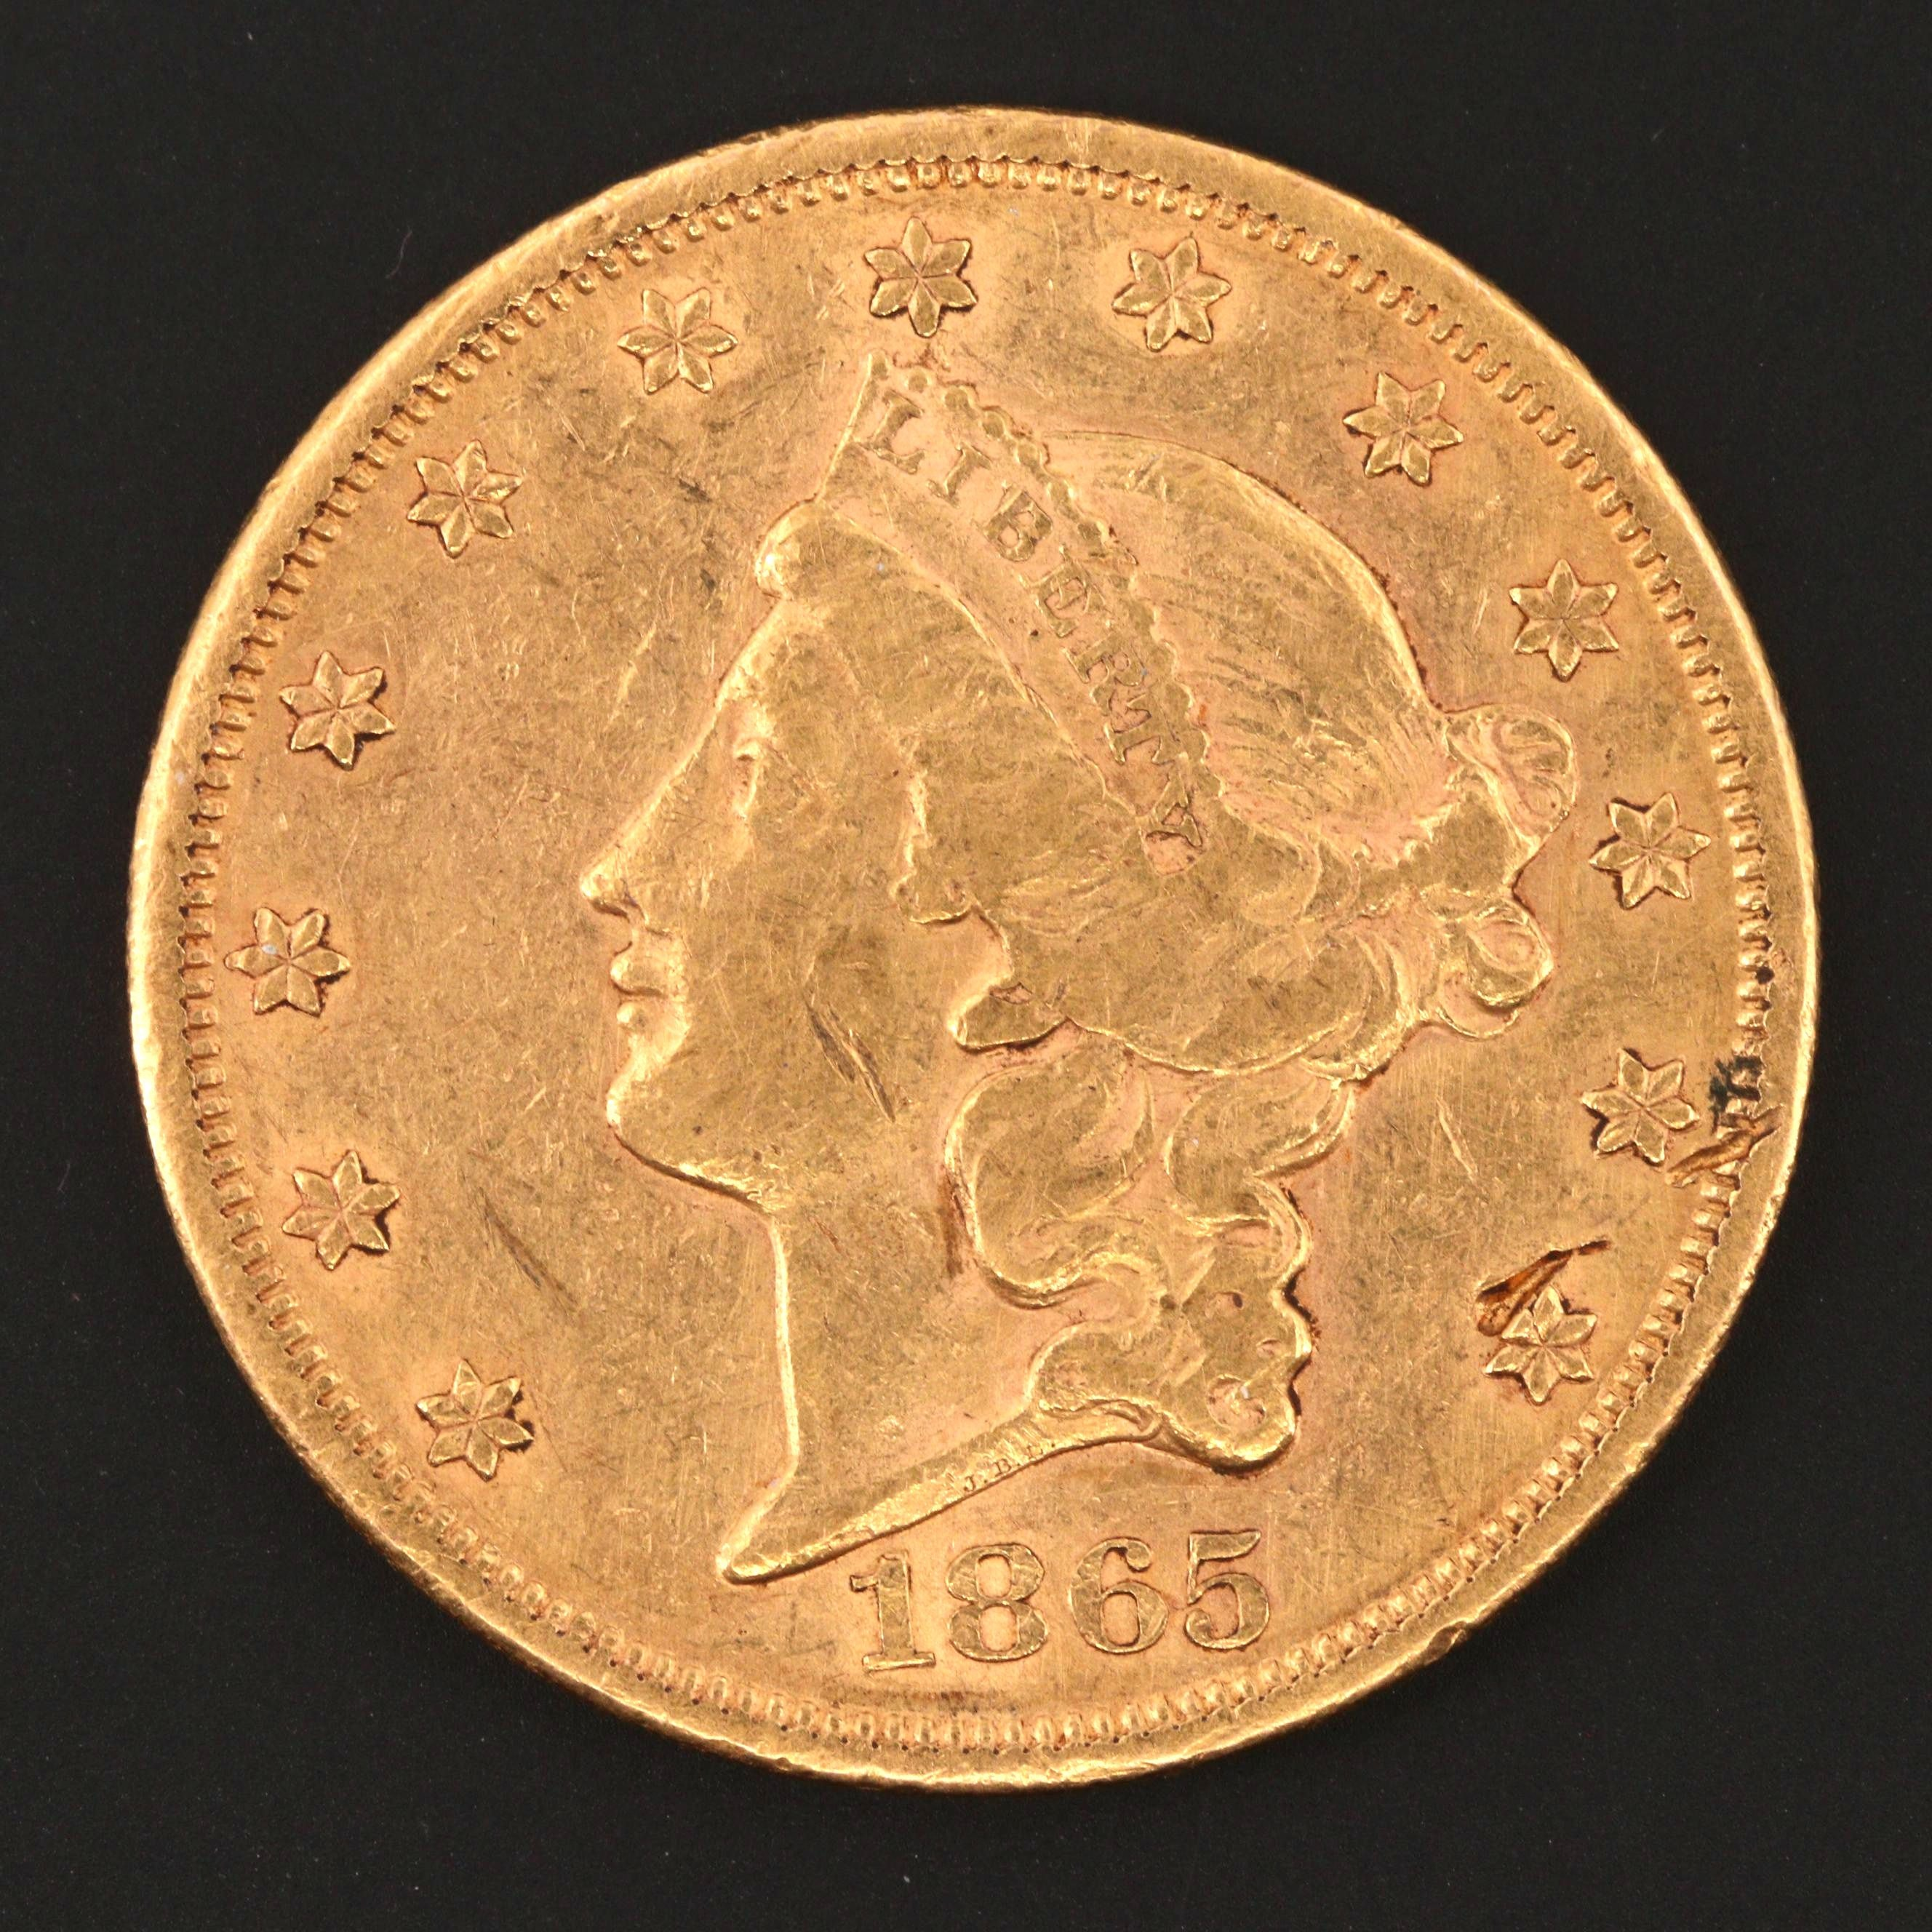 1865 Liberty Head $20 Double Eagle Gold Coin